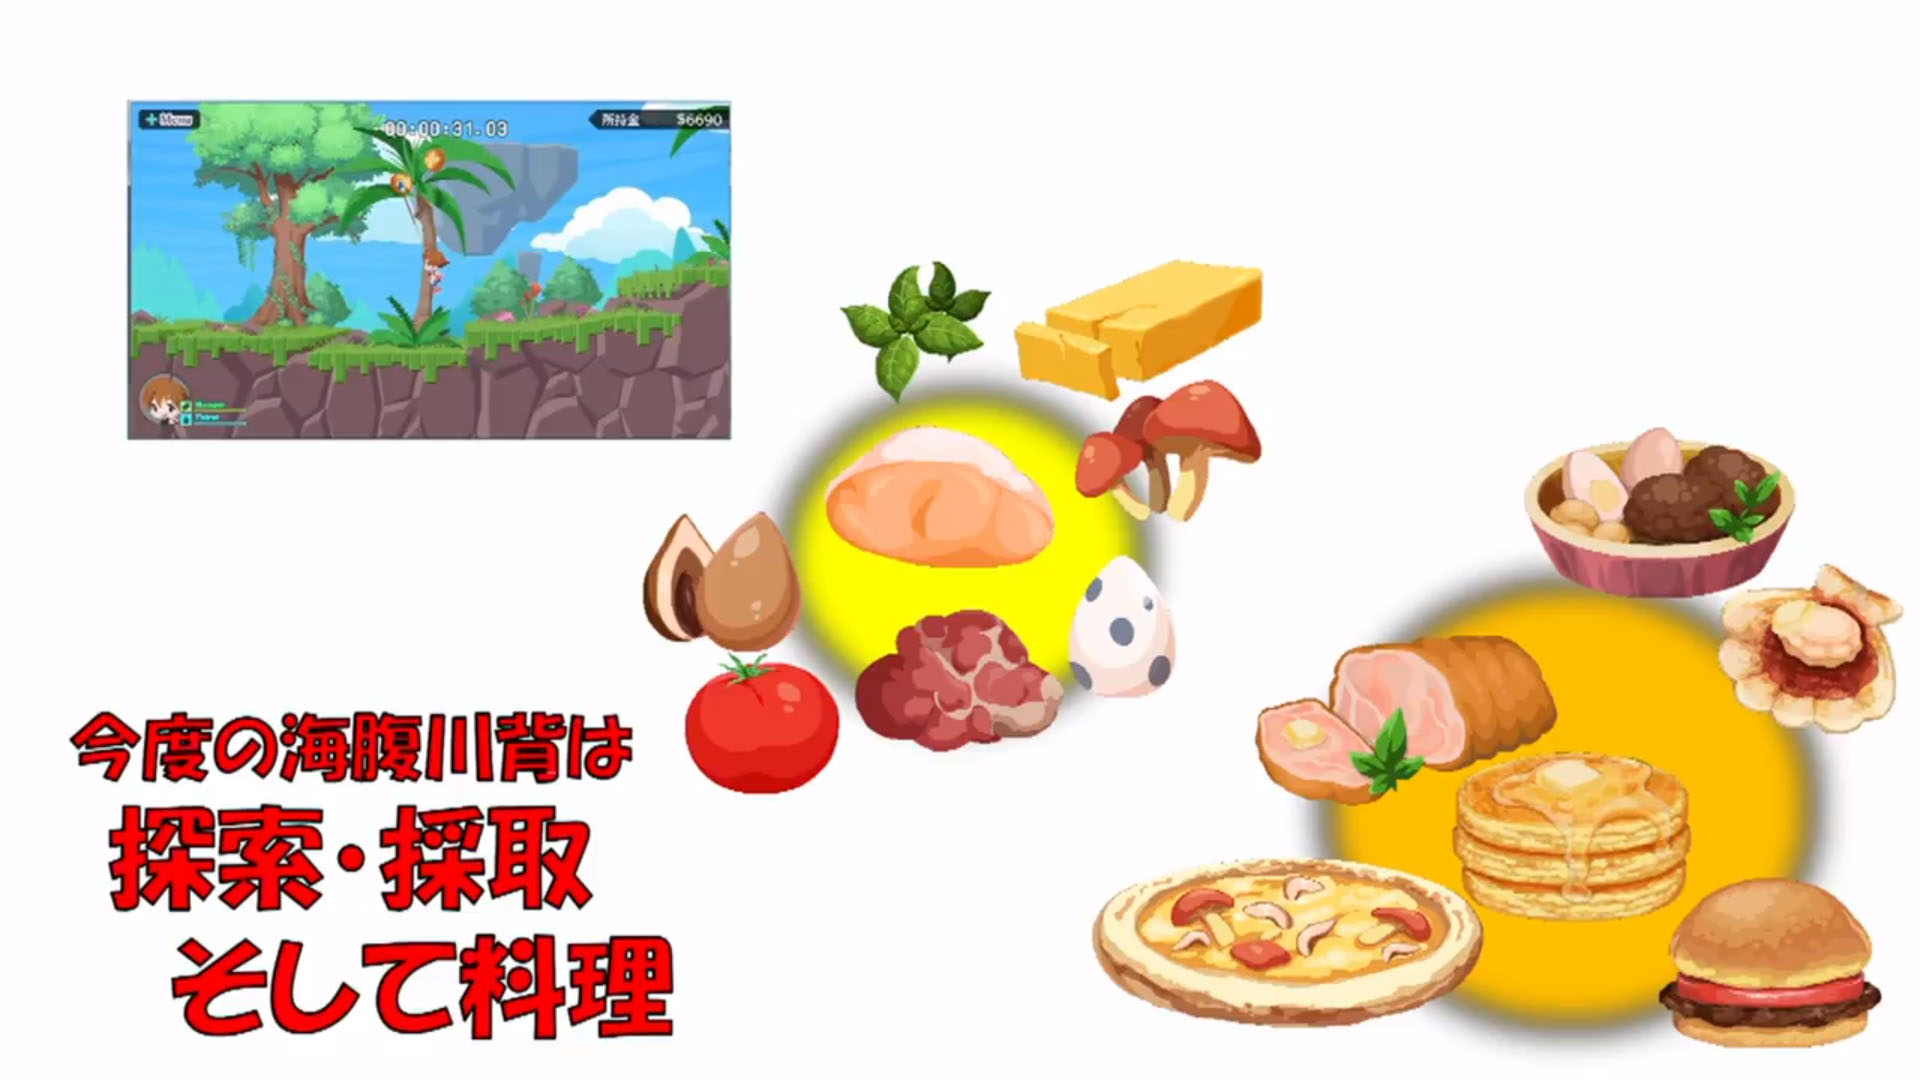 Cuisine Gameplay Umihara Kawase Fresh Tgs 2018 Gameplay Todaygame Online